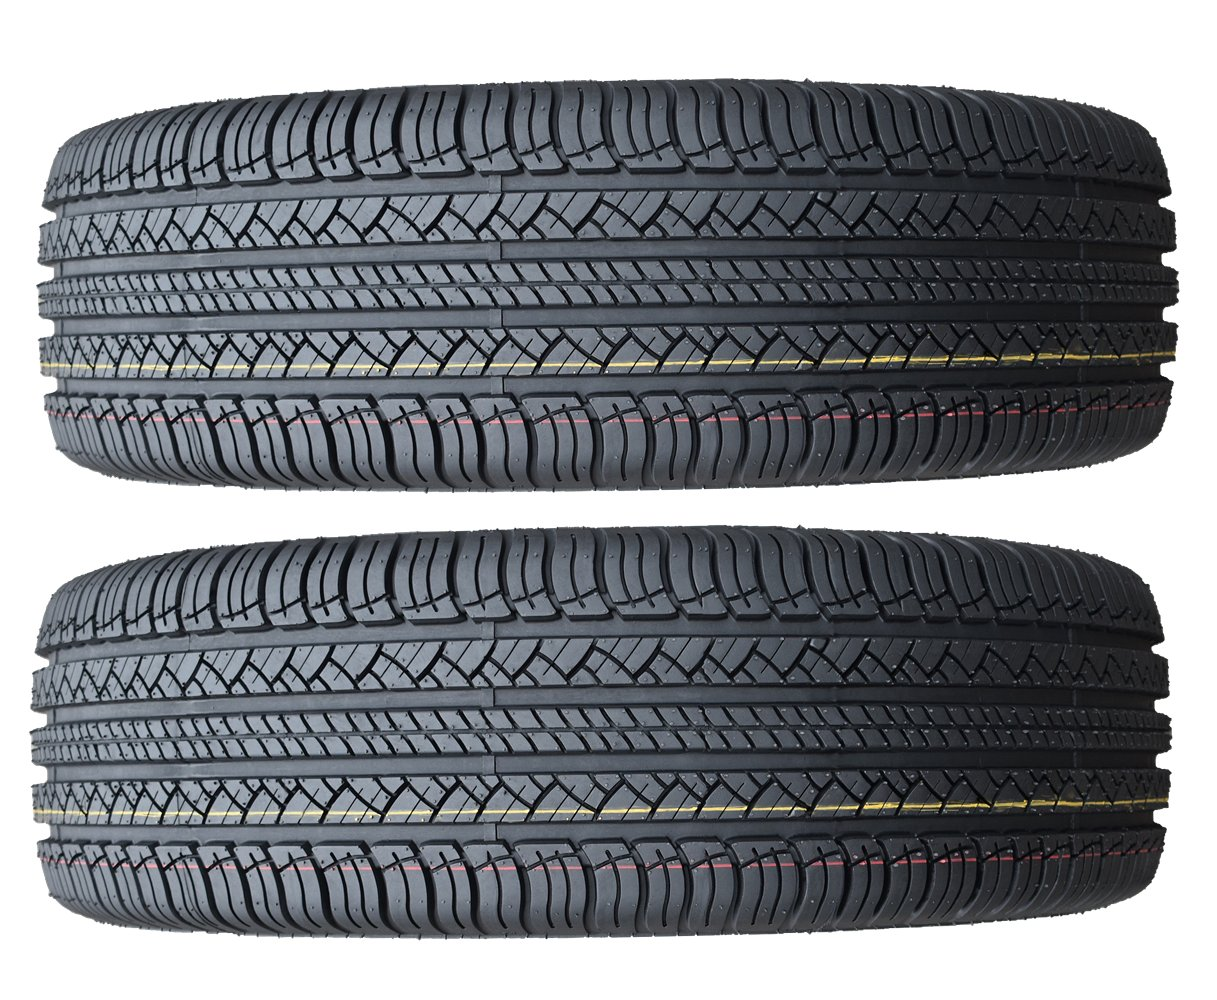 2x215 / 65R16 SUMMER TIRES SUV